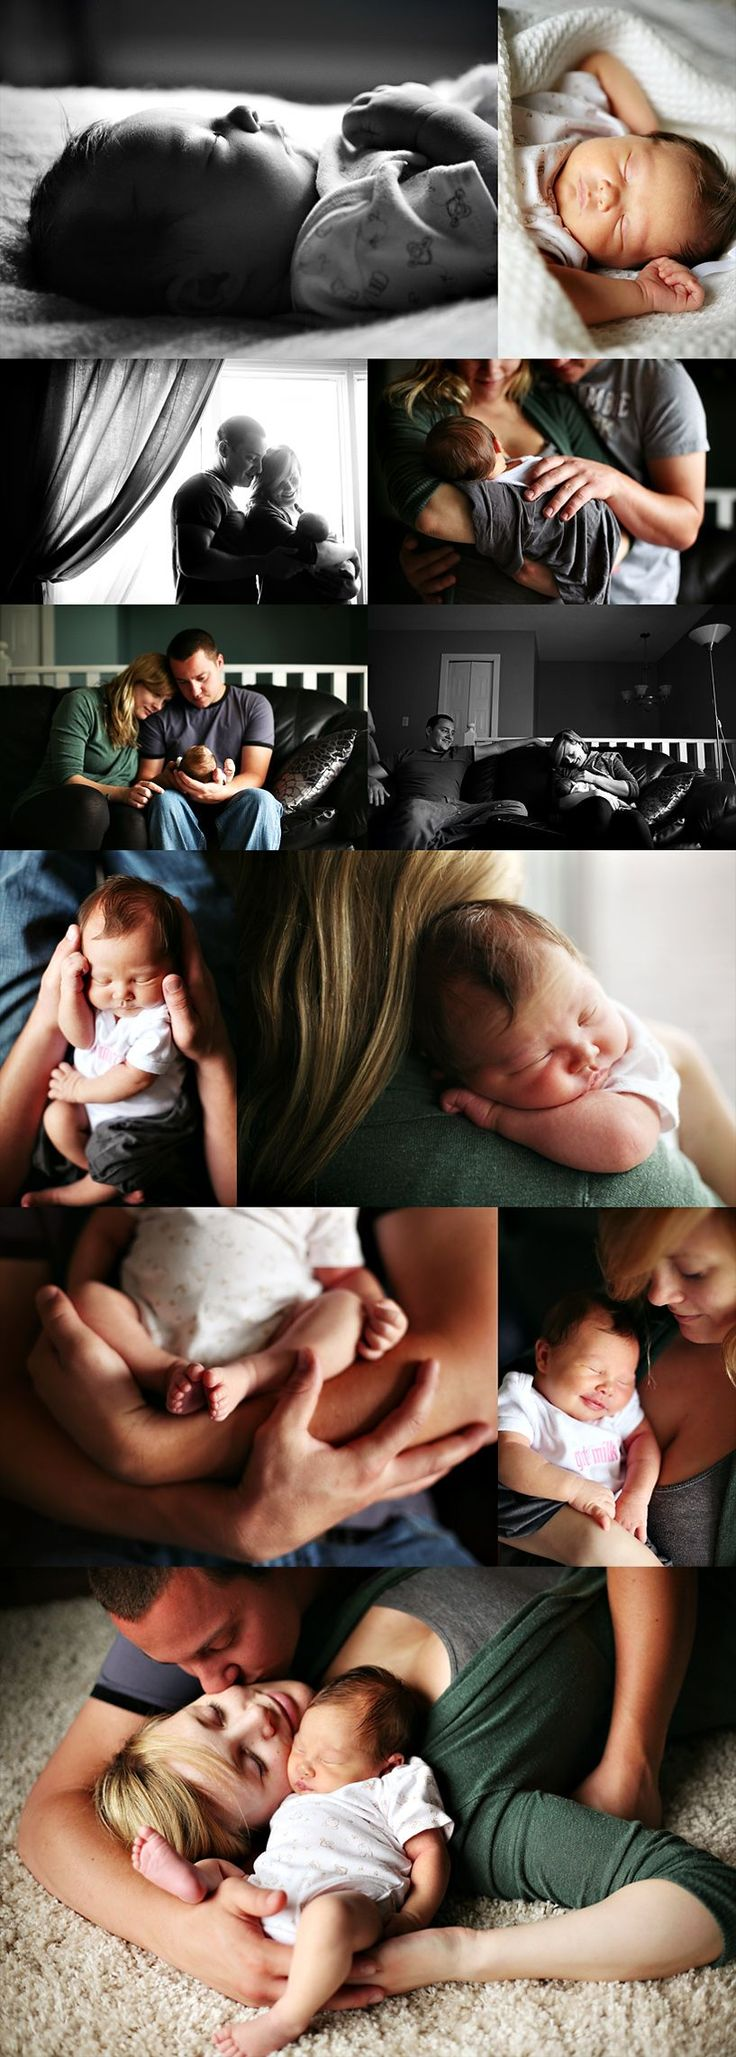 newborn lifestyle photography would love to do these I think I like the lifestyle photos even more than newborn portrait